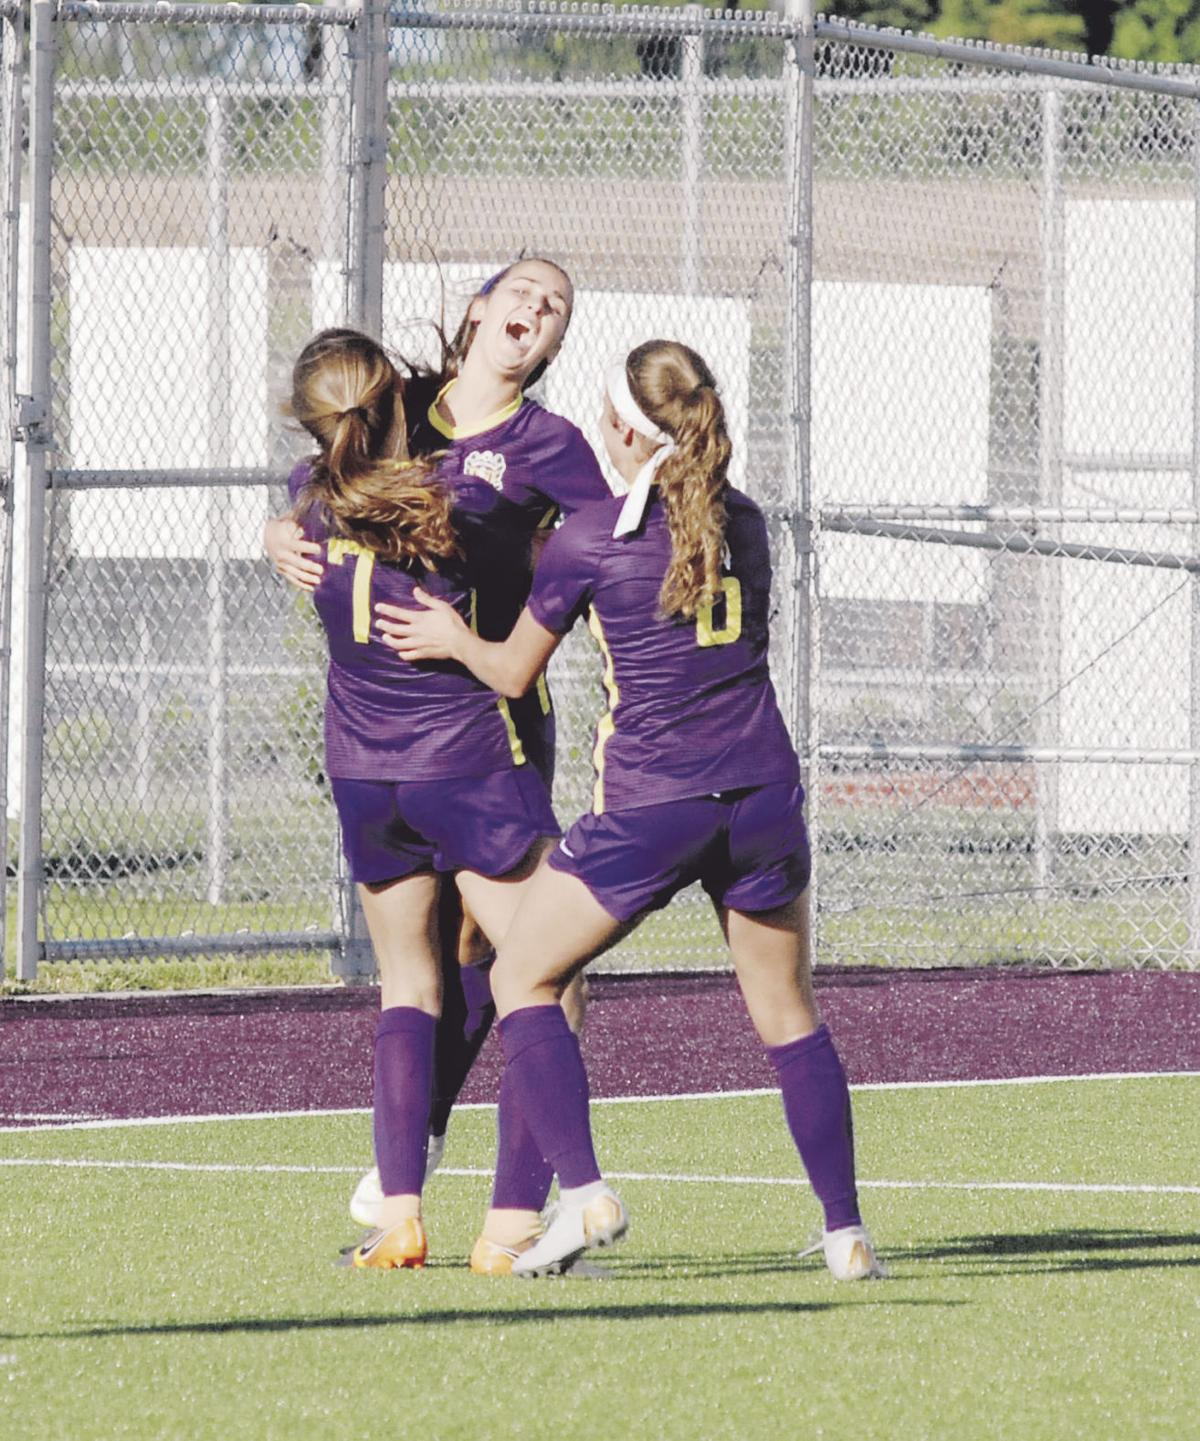 Two late first-half goals sting in Lady Broncos loss